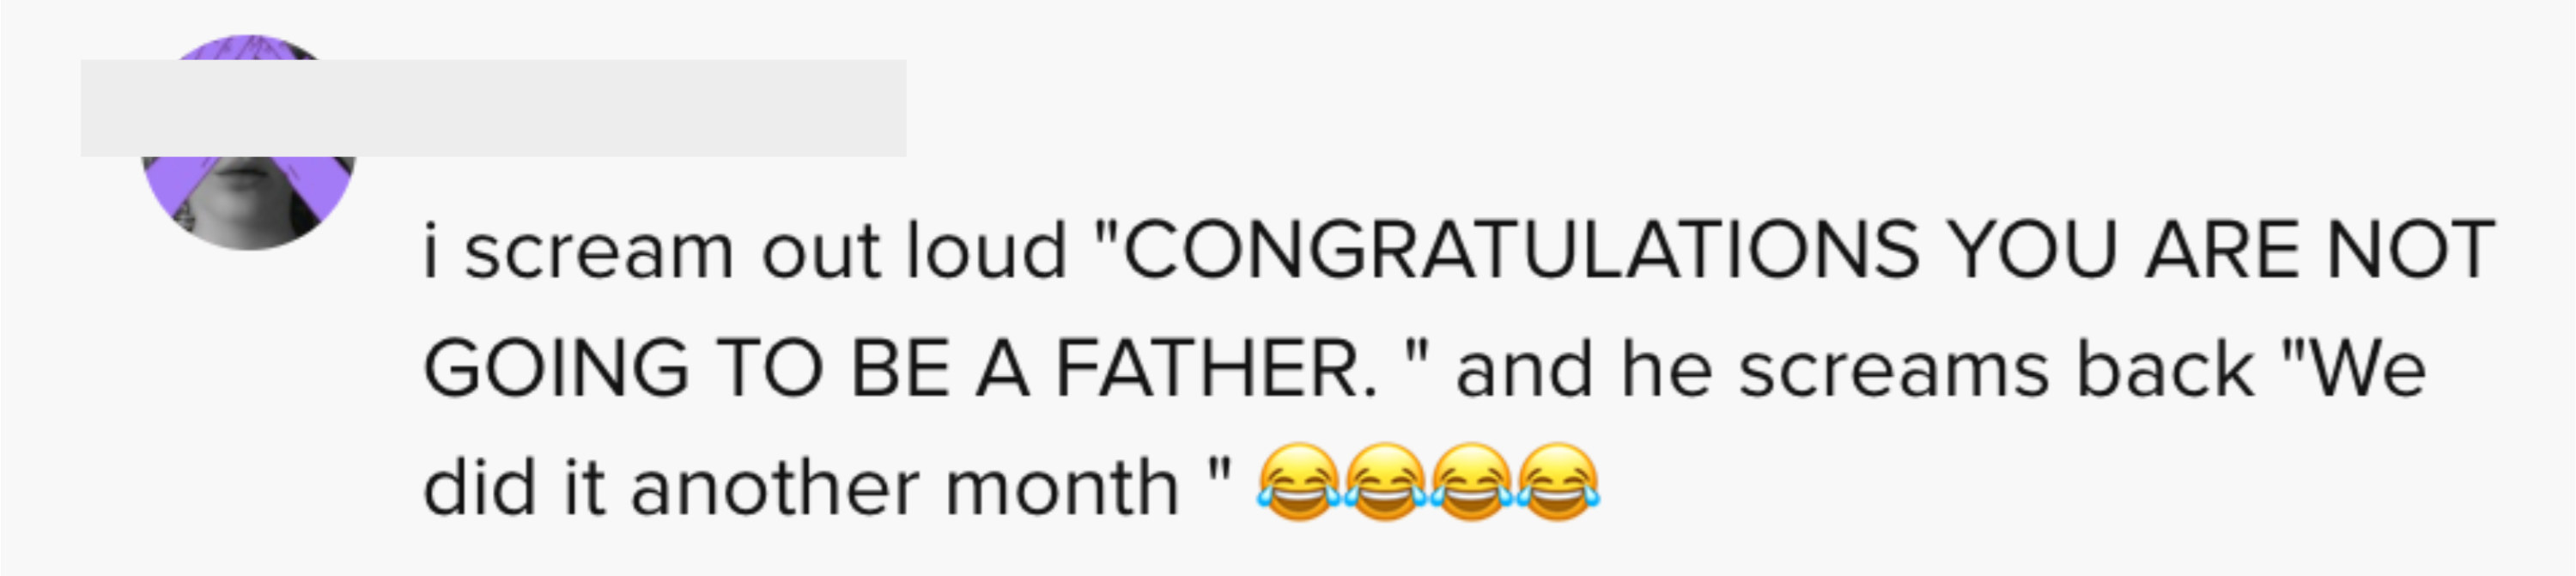 """i scream out loud """"Congratulations you are not going to be a father"""" and he screams back """"we did it another monther"""""""